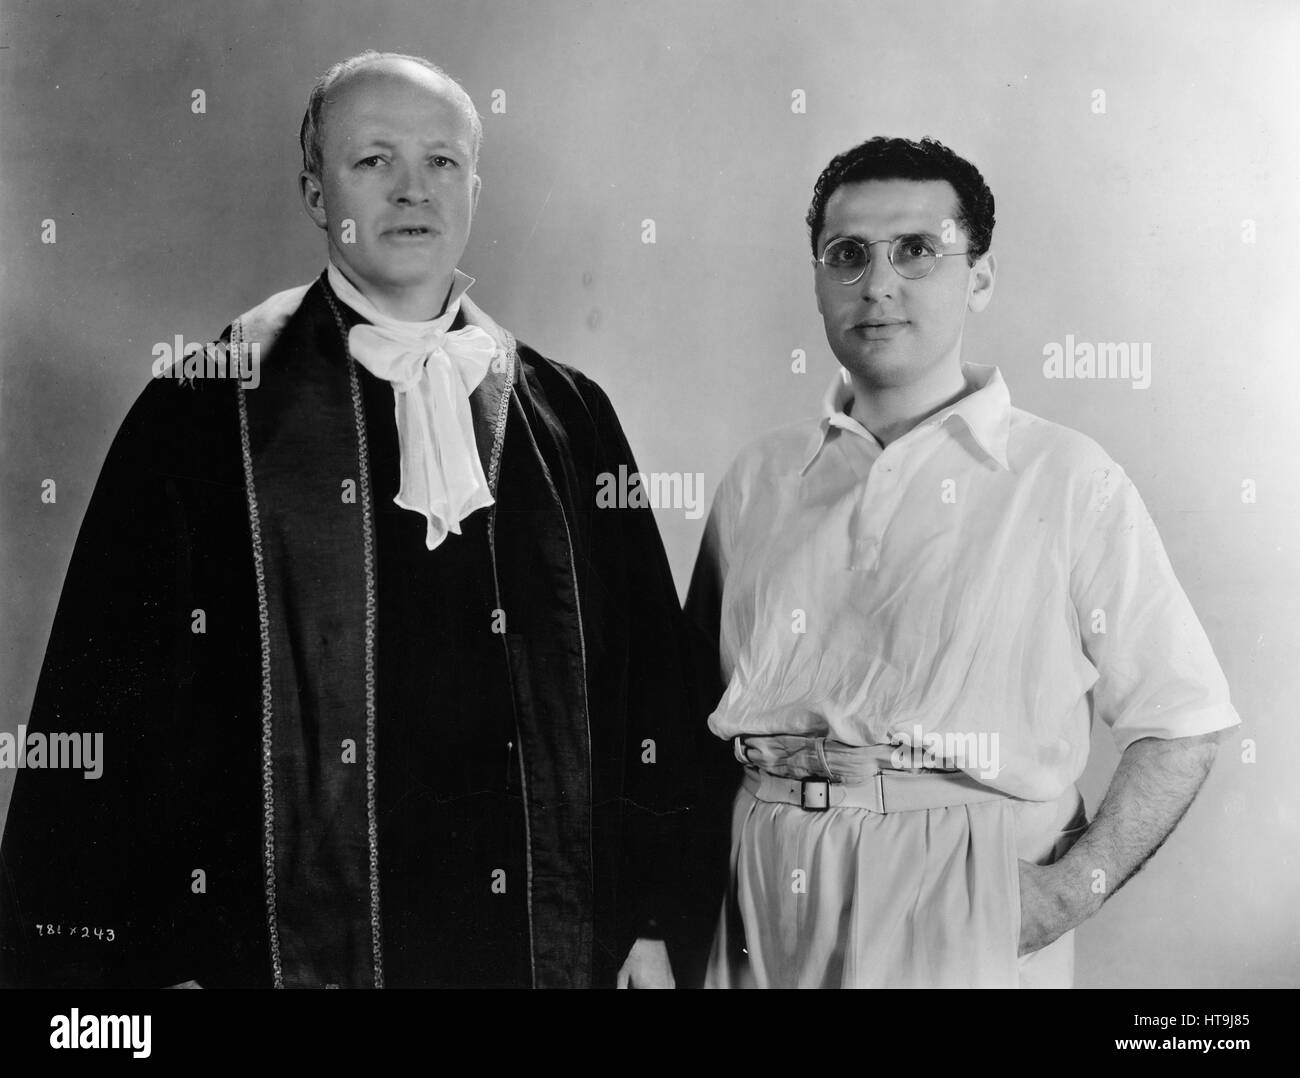 'Noted Author Turns Clergyman for Films...Hugh Walpole, as the Vicar of Blunderstone, and George Cukor, director - Stock Image